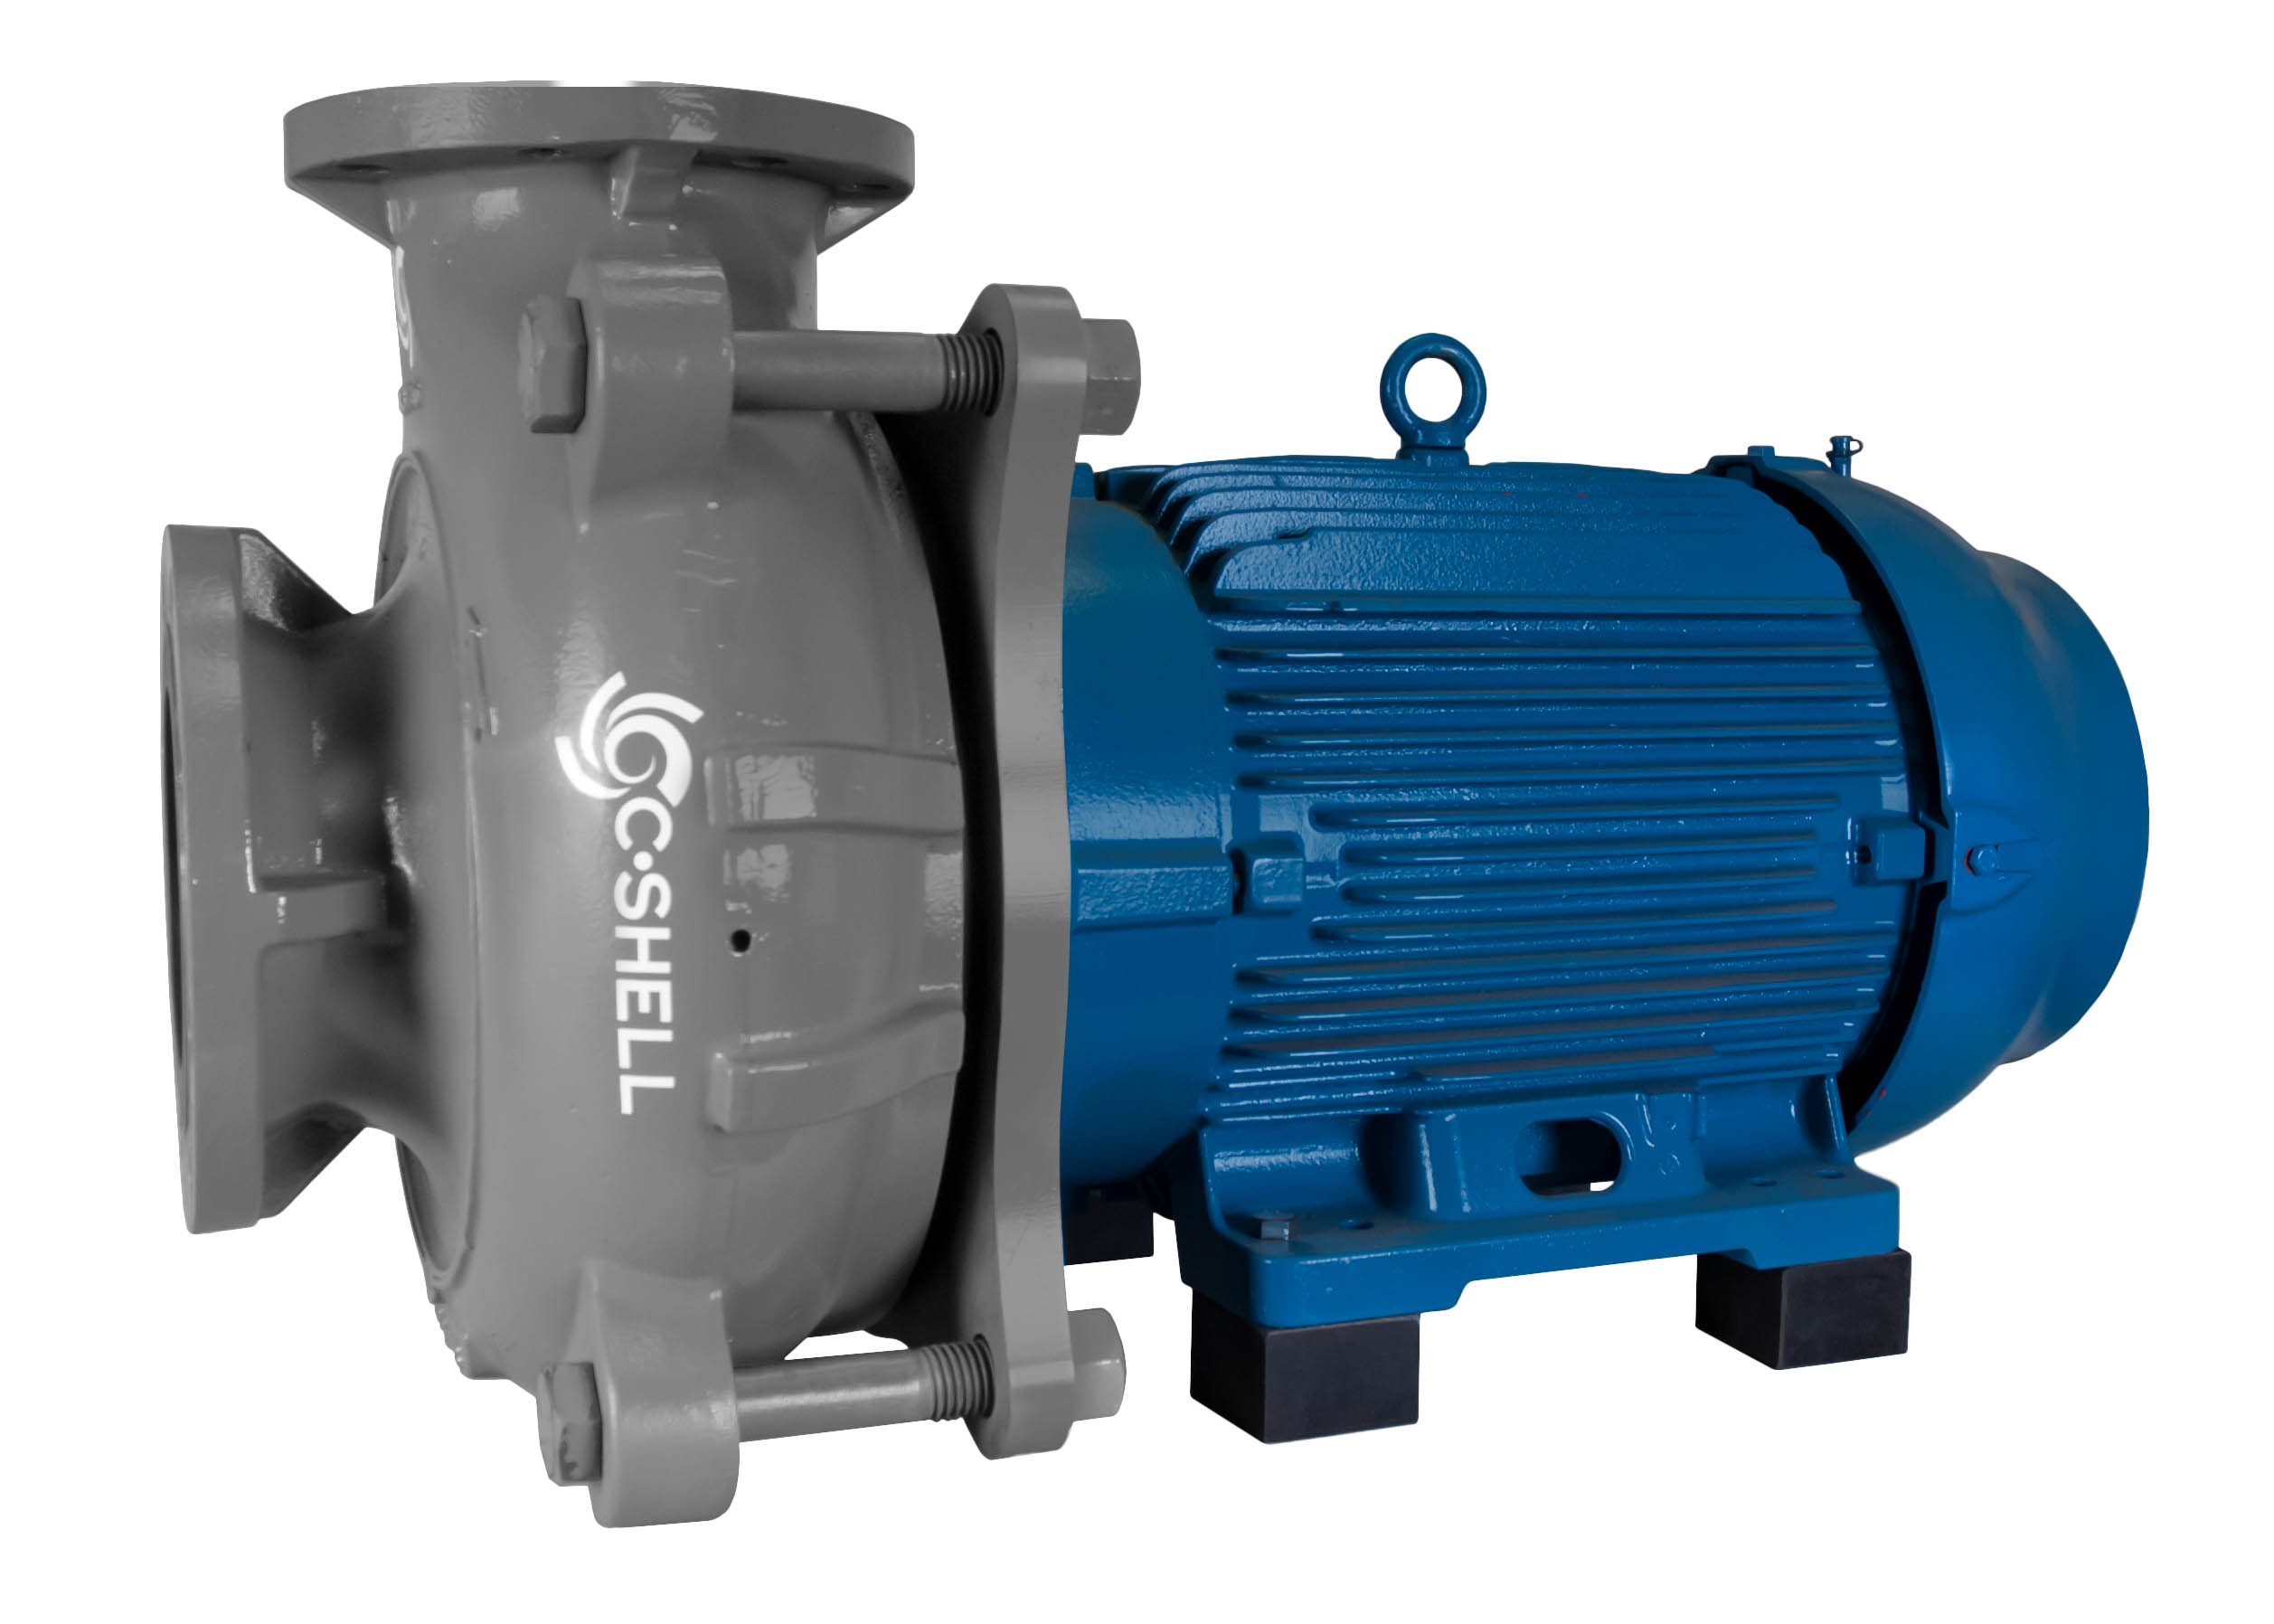 C-Shell 6x5-11 Pump with blue WEG Motor right angle view